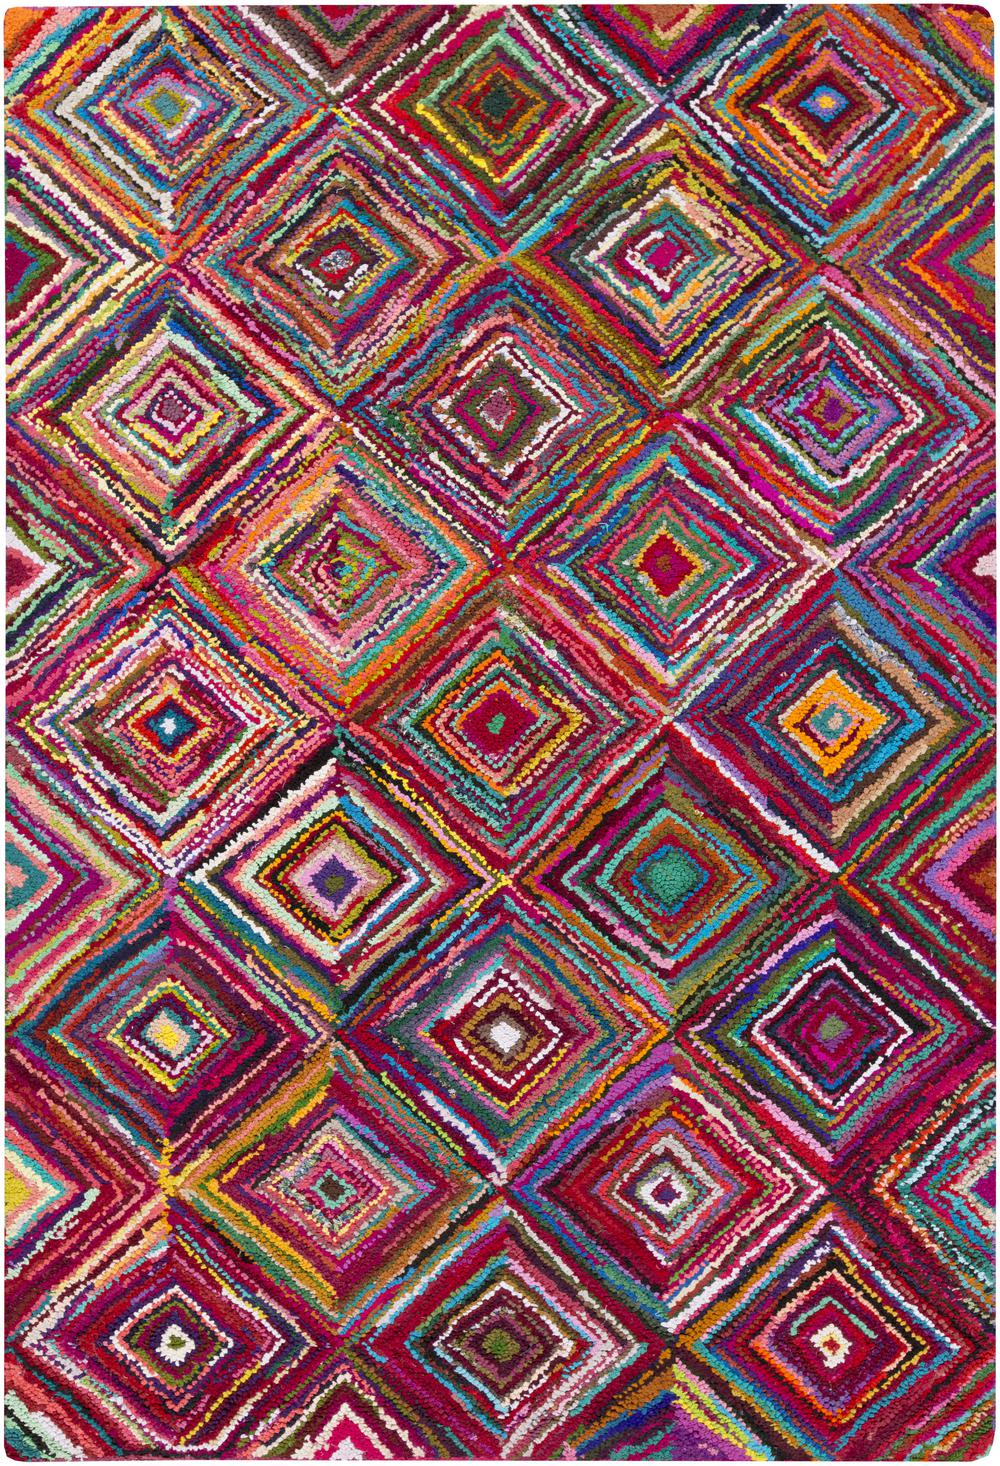 Surya Boho Boh2002 Purple Area Rug Free Shipping